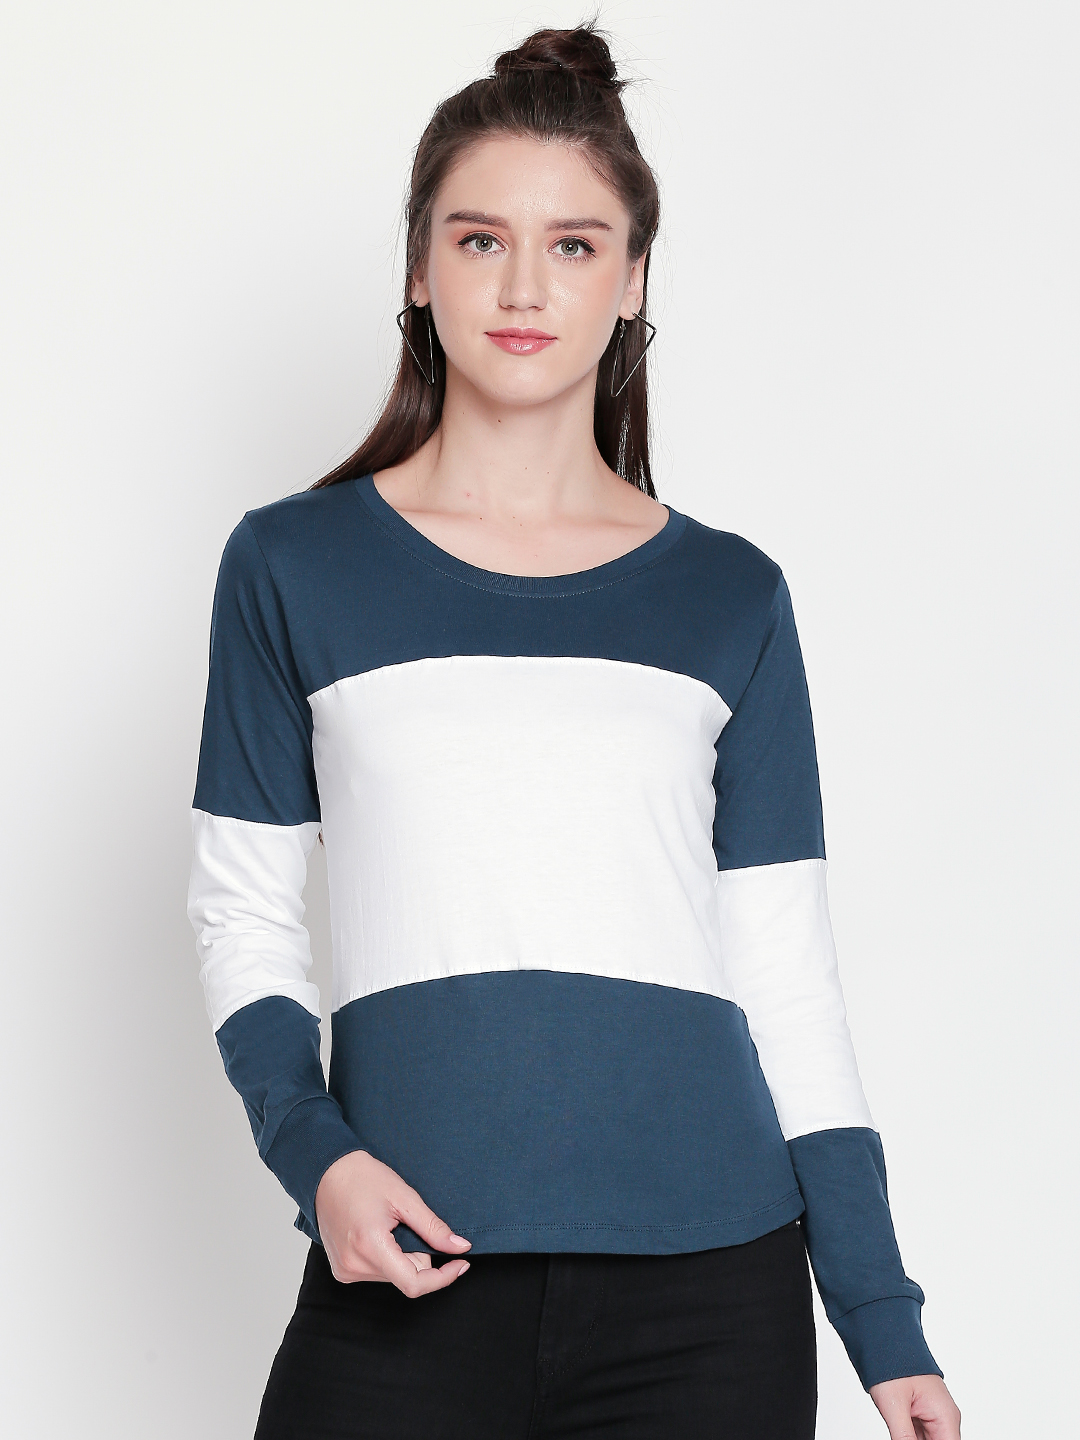 Jhankhi | Green and White Colorblock Full Sleeves T-Shirts